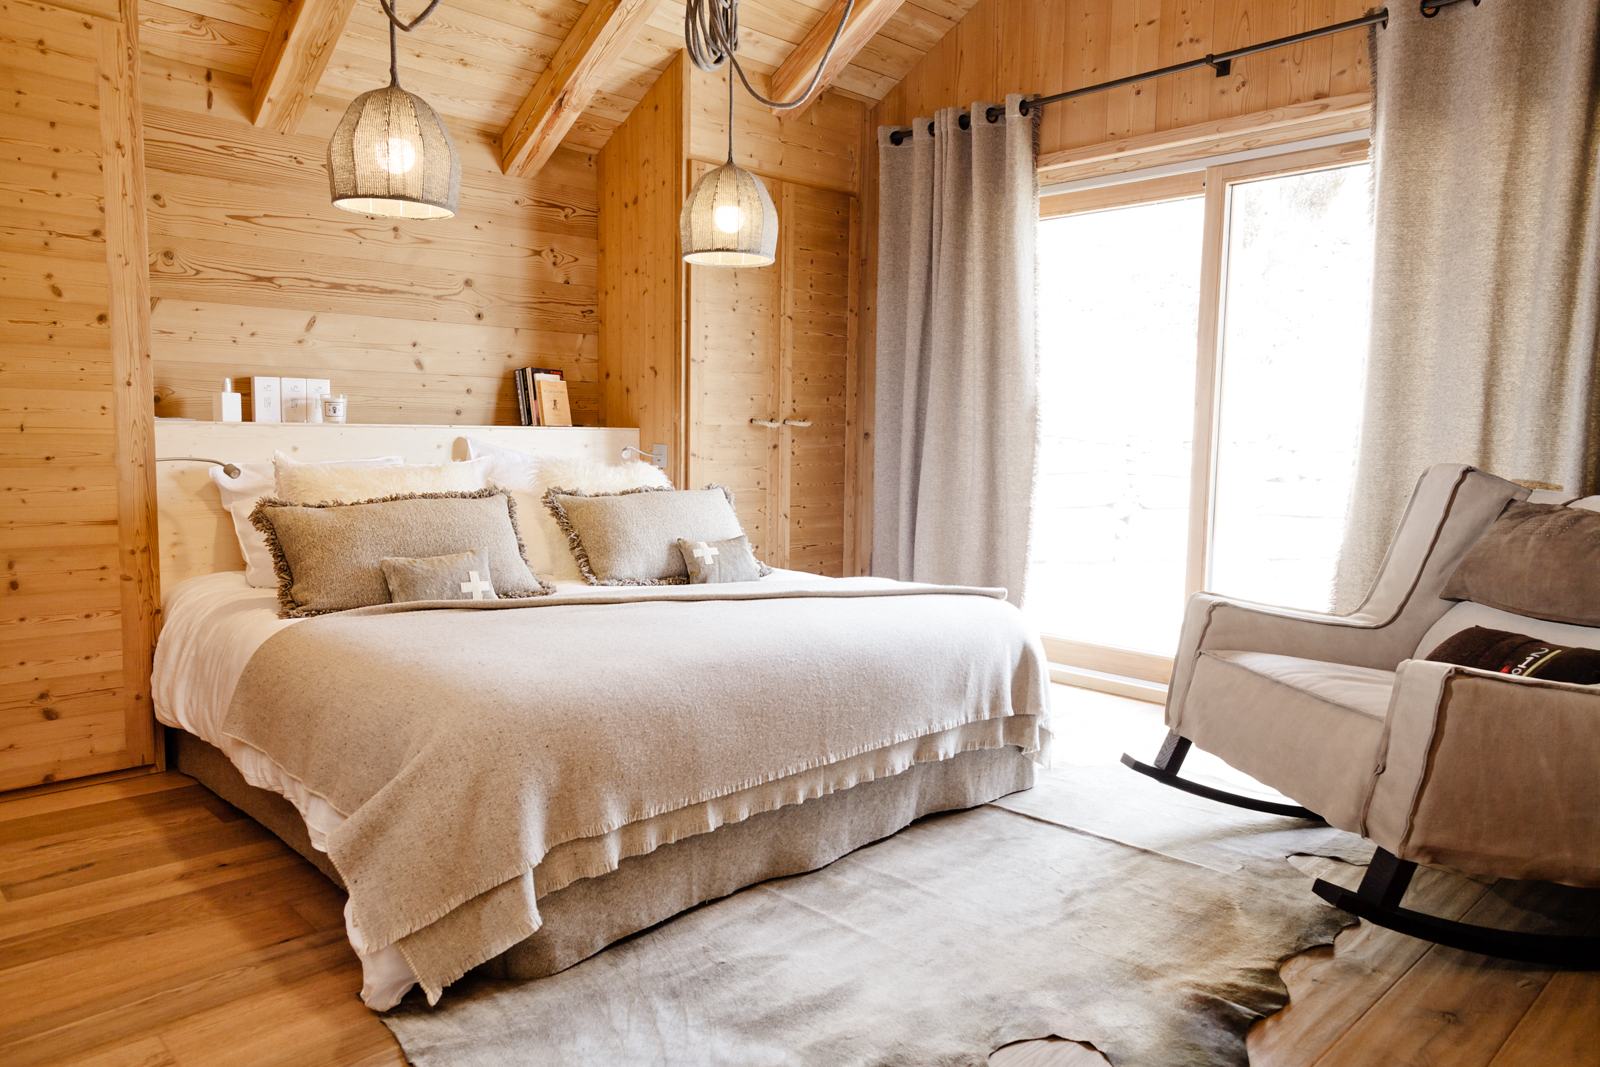 location chalet luxe serre chevalier pied des pistes services conciergerie. Black Bedroom Furniture Sets. Home Design Ideas